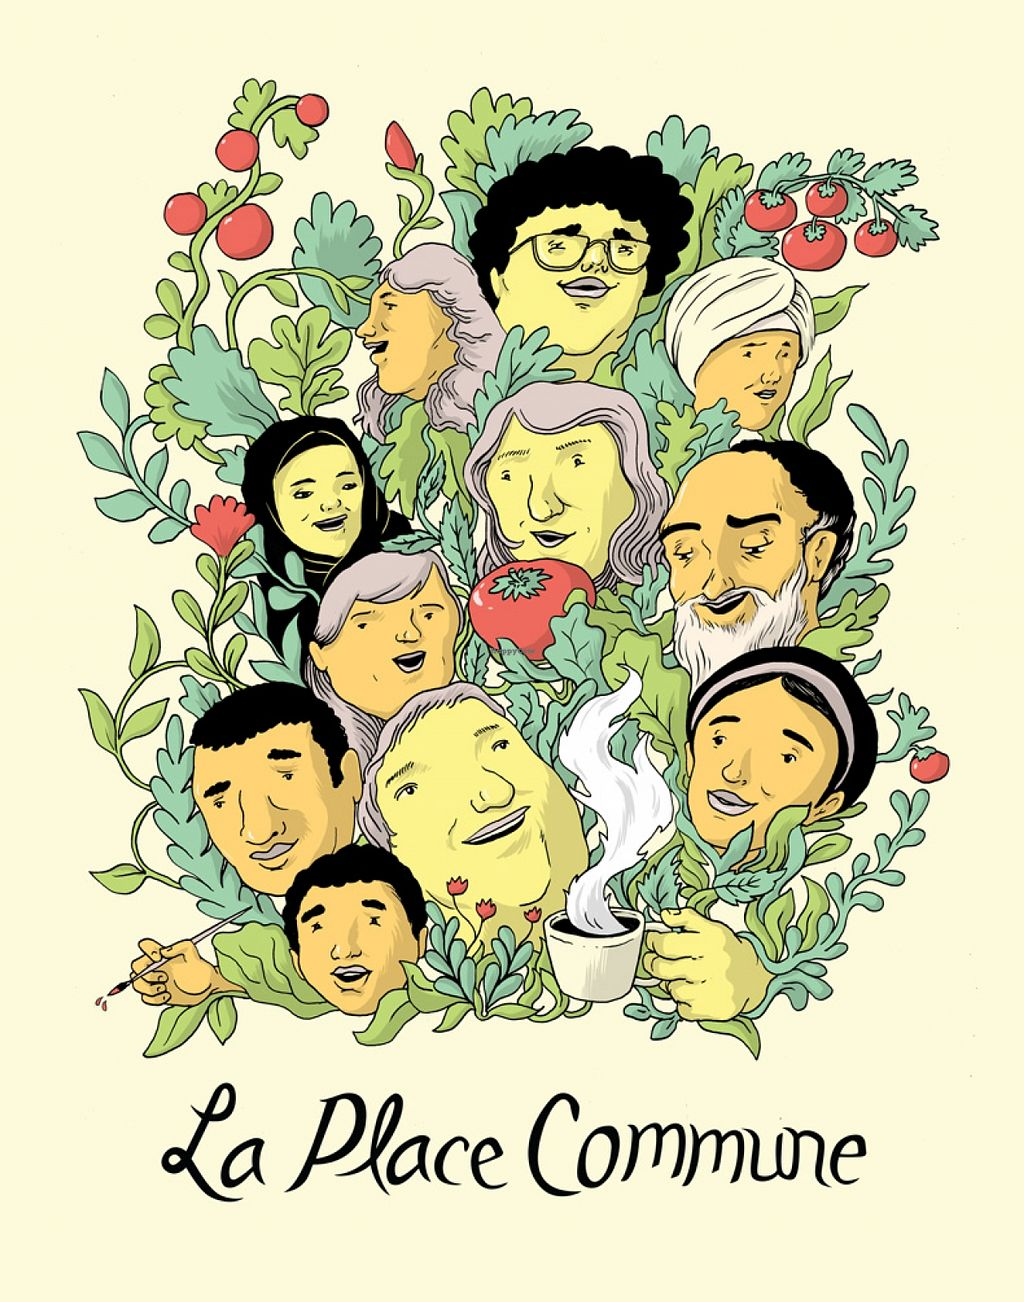 """Photo of La Place Commune  by <a href=""""/members/profile/laplacecommune"""">laplacecommune</a> <br/>poster by Jonathan Dyck <br/> October 11, 2015  - <a href='/contact/abuse/image/64372/120970'>Report</a>"""